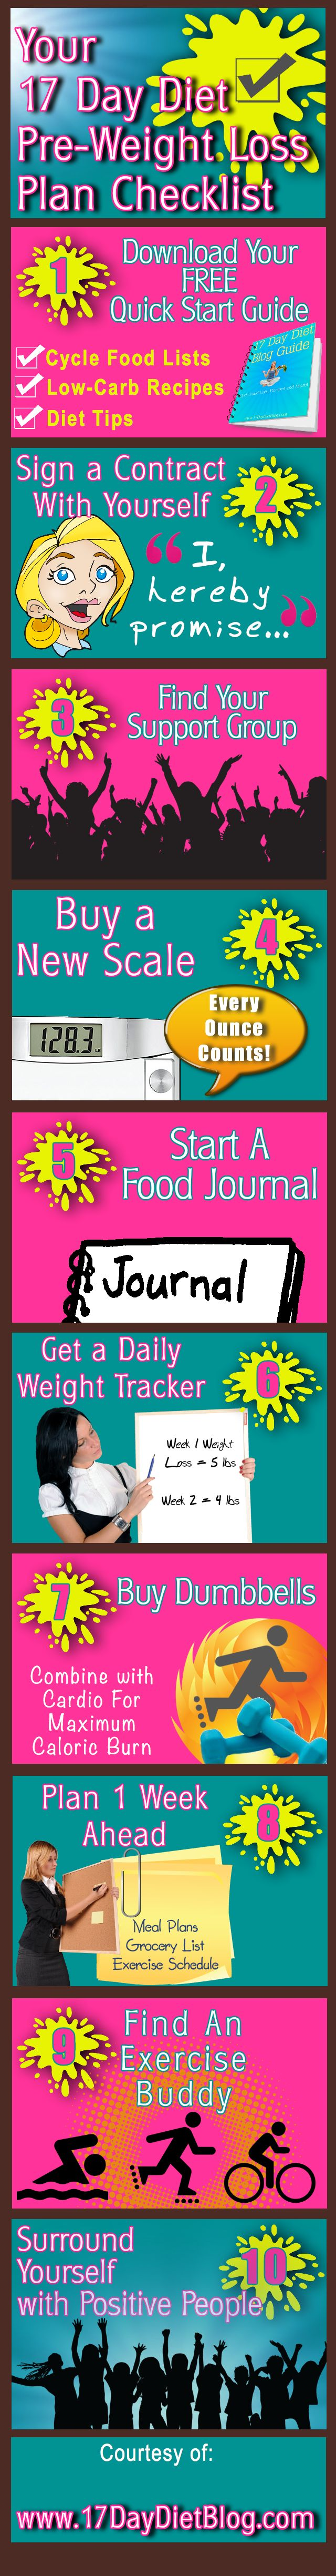 Your 17 Day Diet Pre-Weight Loss Plan Checklist Just in Time for the New Year! Go here for your FREE checklist DOWNLOAD: http://17ddblog.com/your-17-day-diet-pre-weight-loss-plan-checklist/ #17DayDiet #NewYearWeightLossGoal